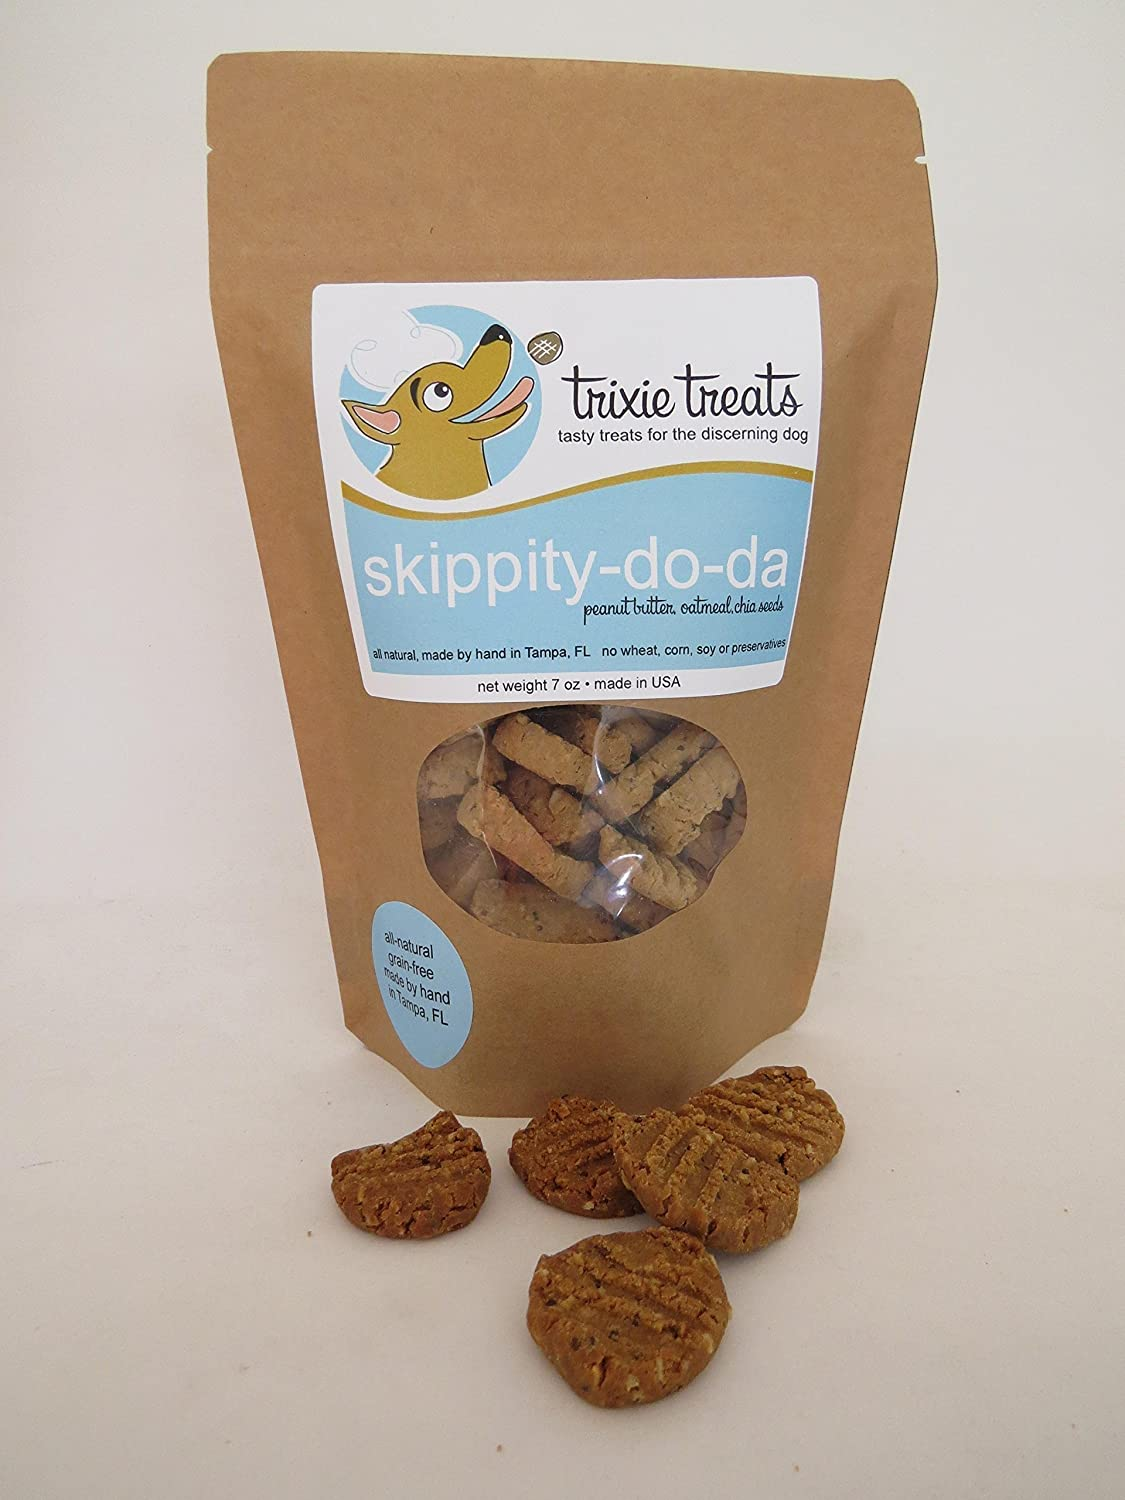 Trixie Treats grain-free peanut butter oatmeal dog treats - Skippity-do-da